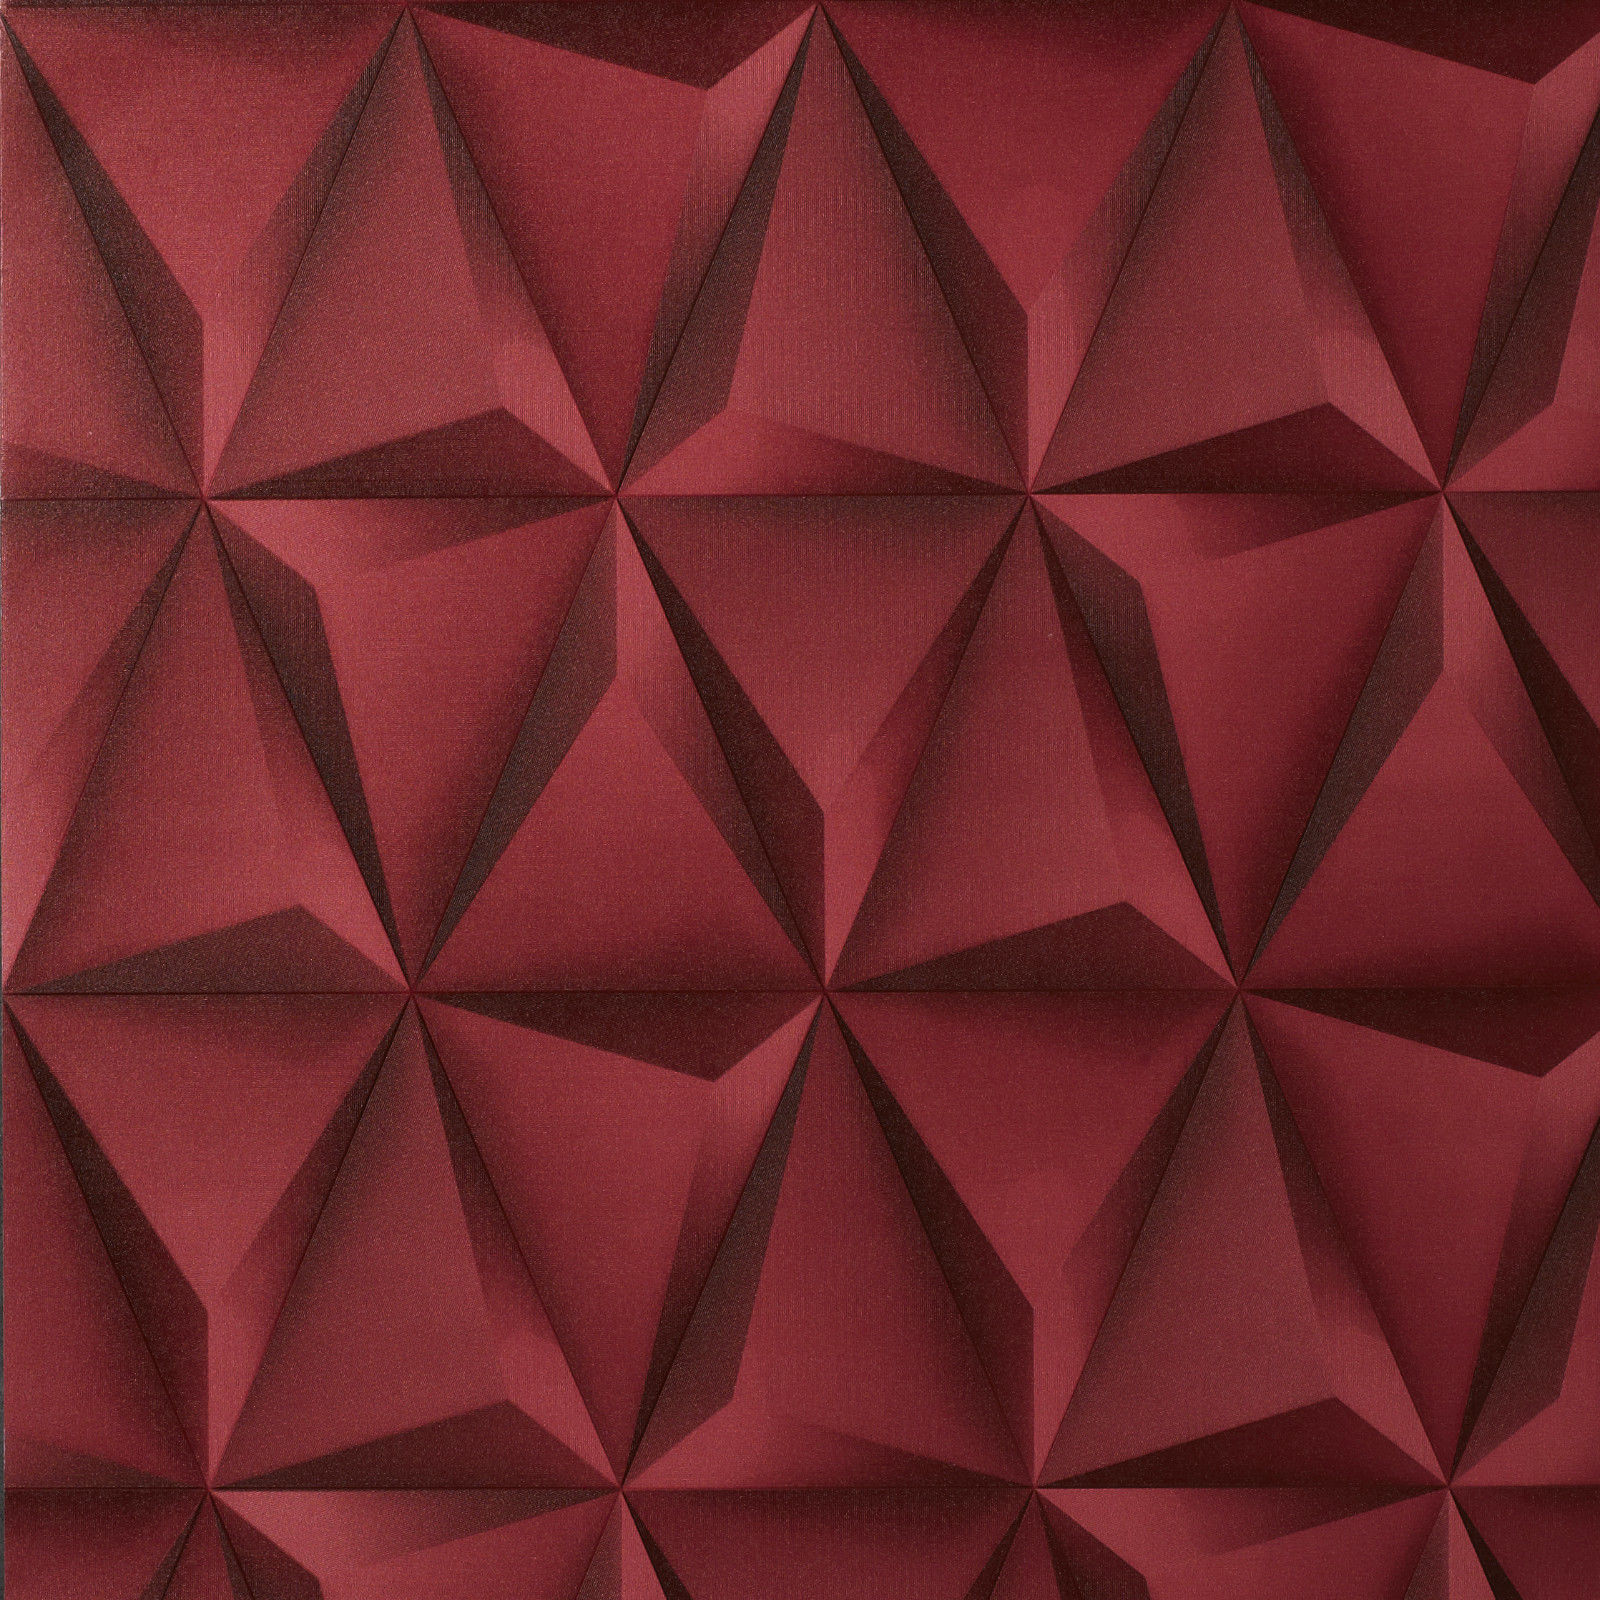 Exclusive 3d tetrahedron vinyl wallpaper 360105 red for 3d washable wallpaper